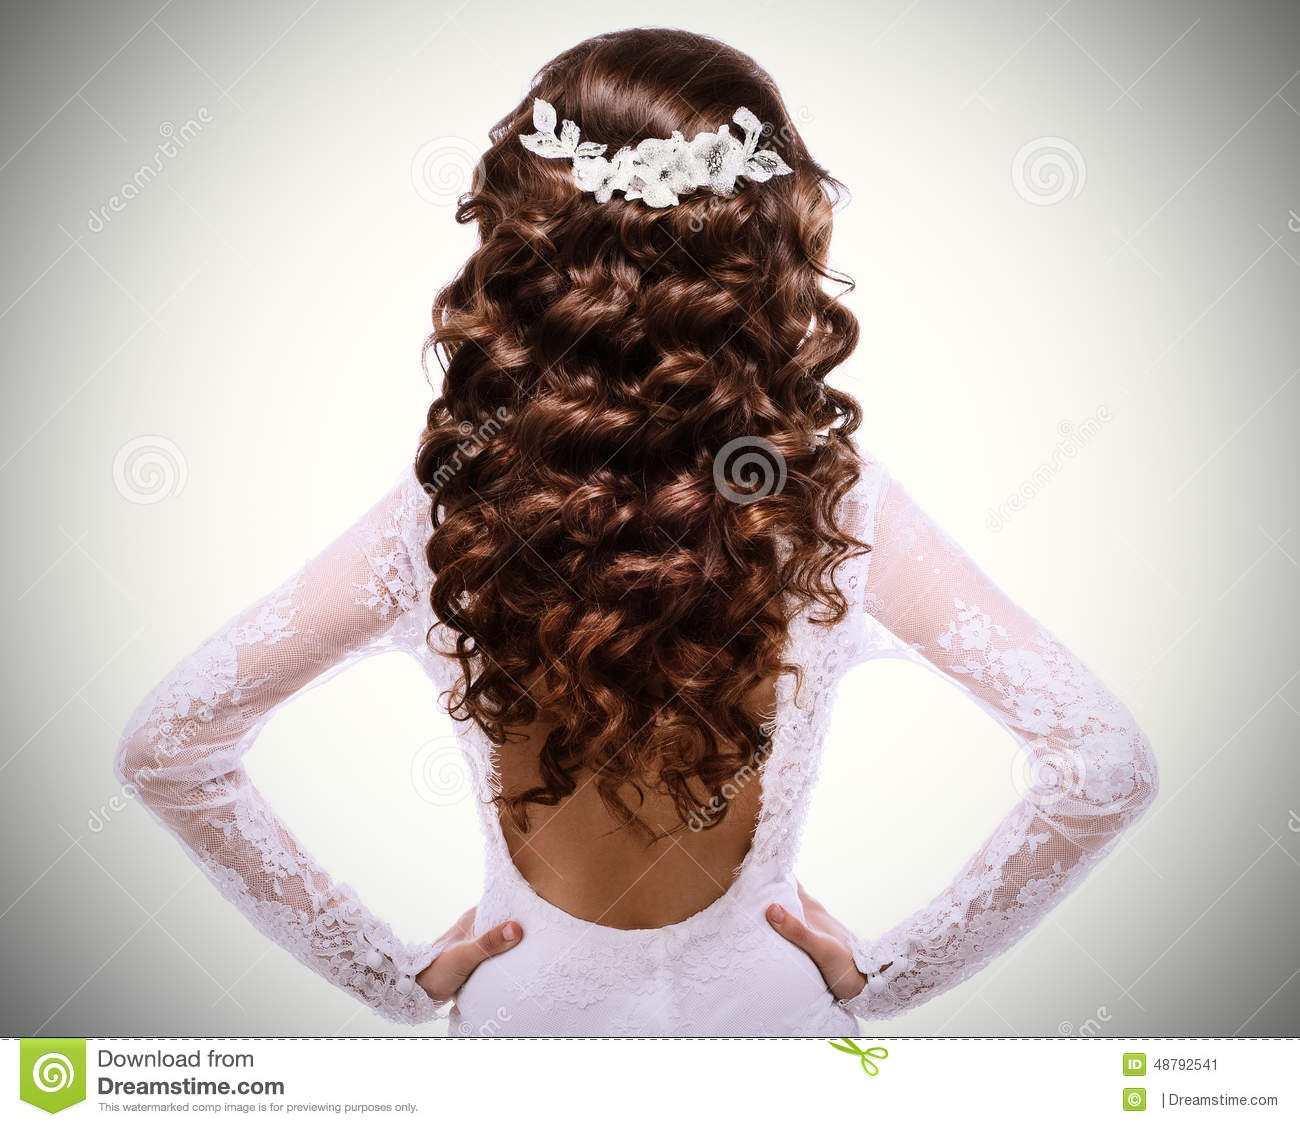 Picture Of Long Curly Brown Hair Brunette Girl In White Wedding